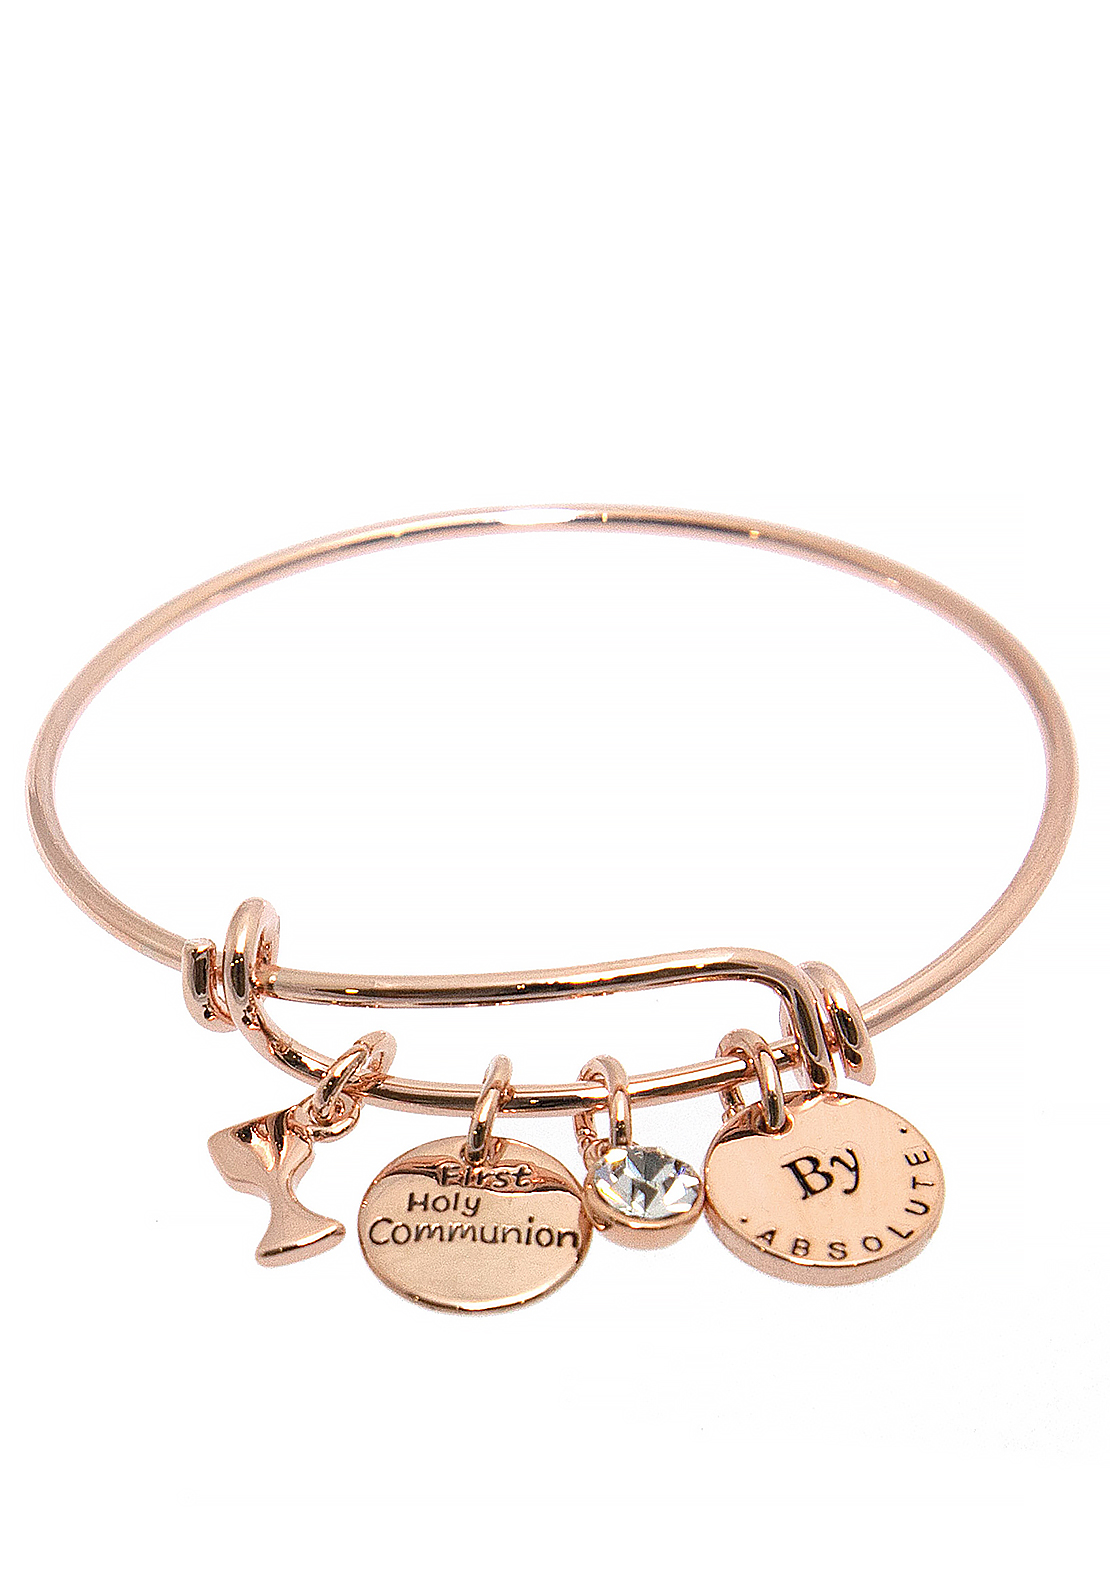 Absolute Jewellery Girls First Holy Communion Charm Bangle, Rose Gold